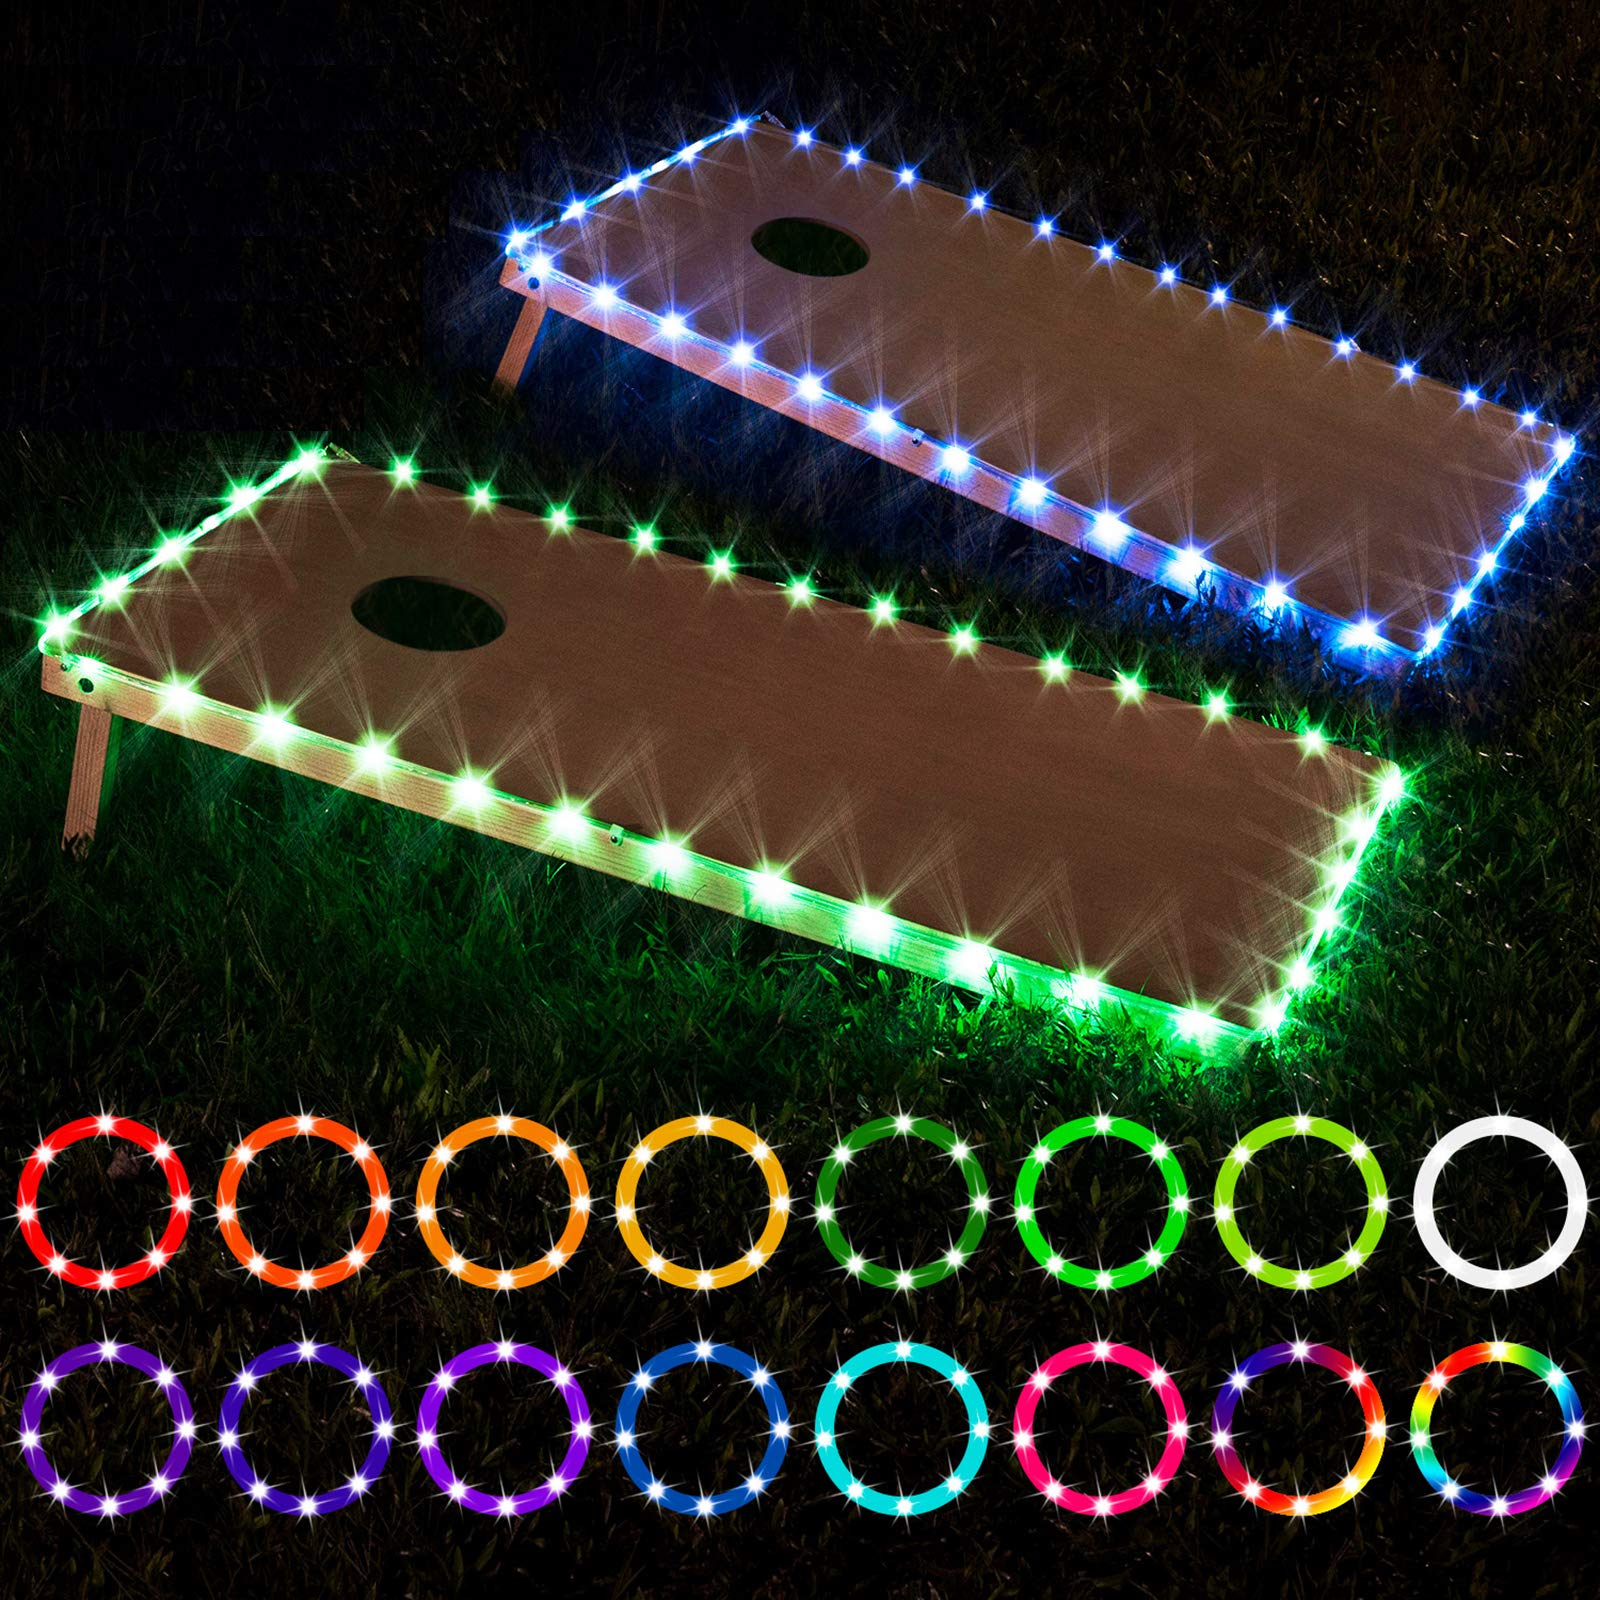 LED Cornhole Lights, Remote Control Cornhole Board Edge LED Lights, 16 Color Change by Yourself, a Great Addition for Playing Bean Bag Toss Cornhole Game at The Family Backyard at Night,2 Sets